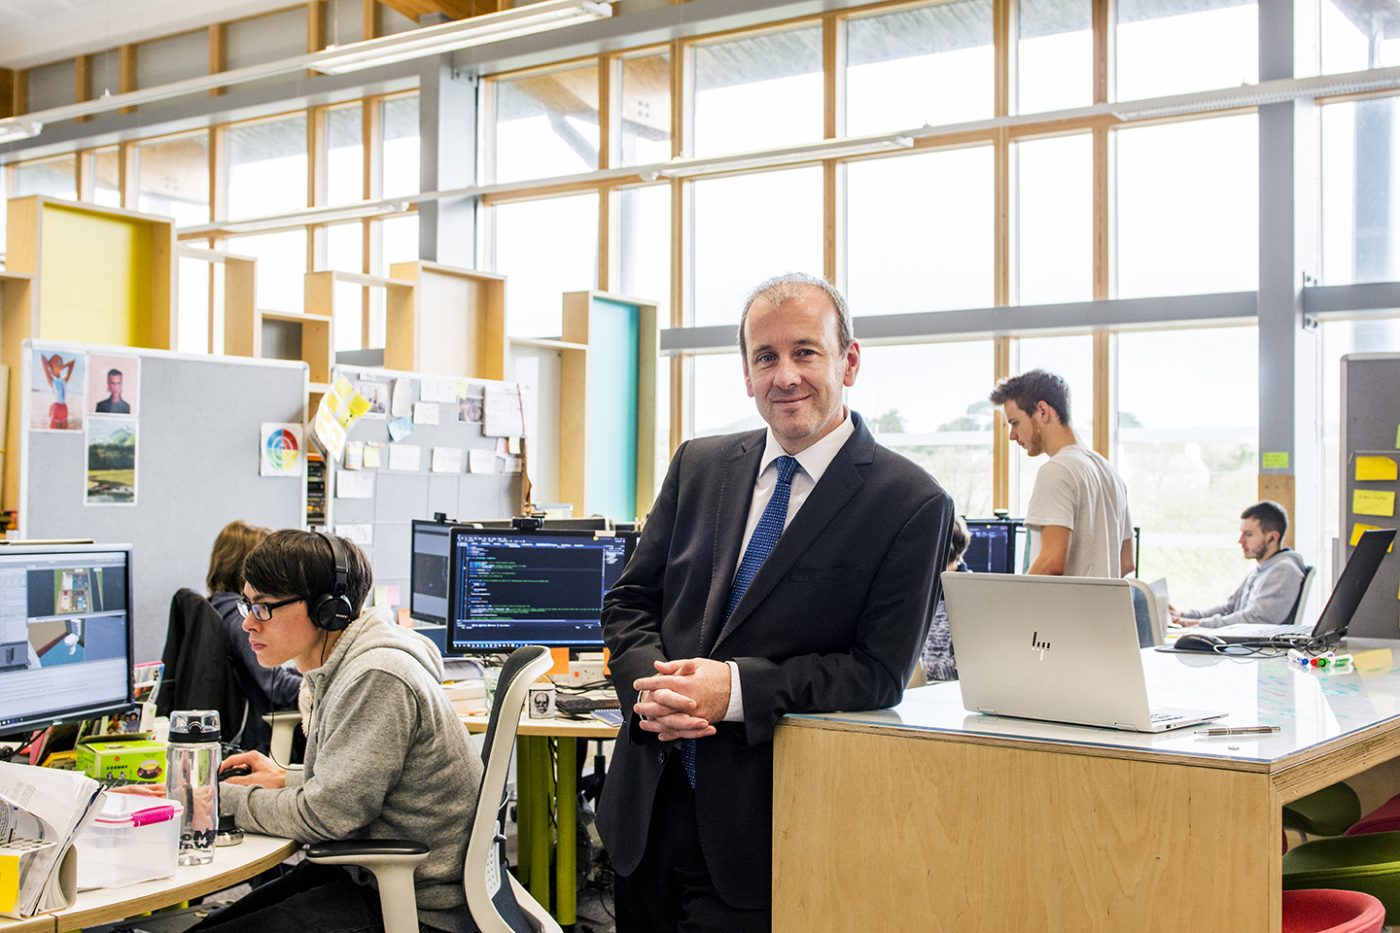 Nick Dixon in a suit at the Radix communications office.